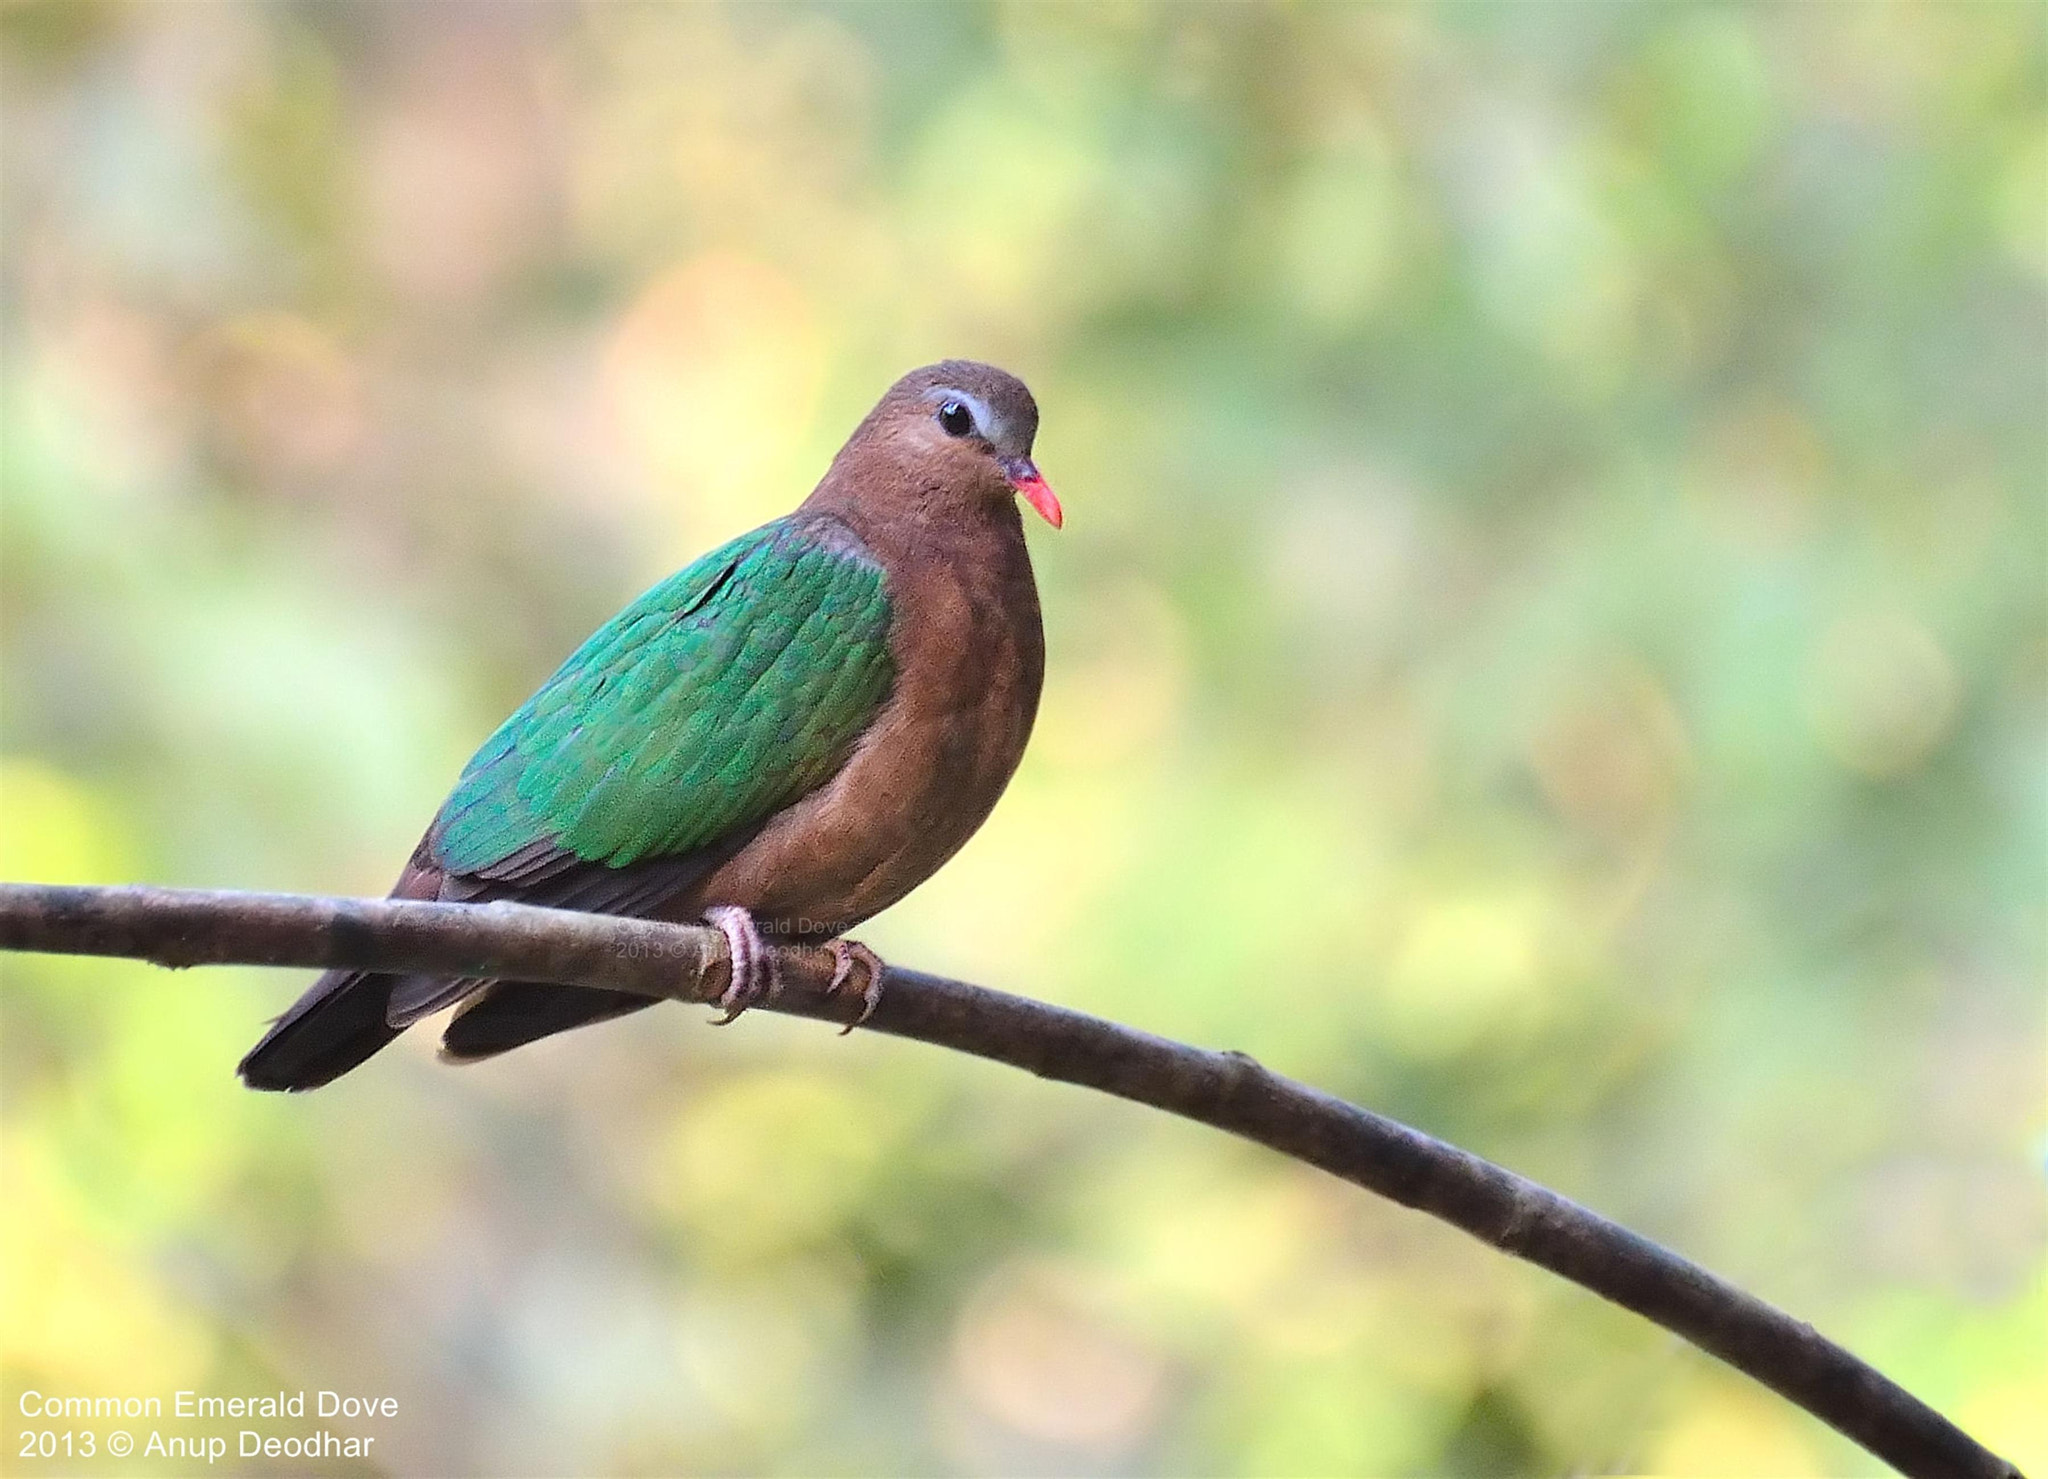 Photograph Common Emerald Dove by Anup Deodhar on 500px